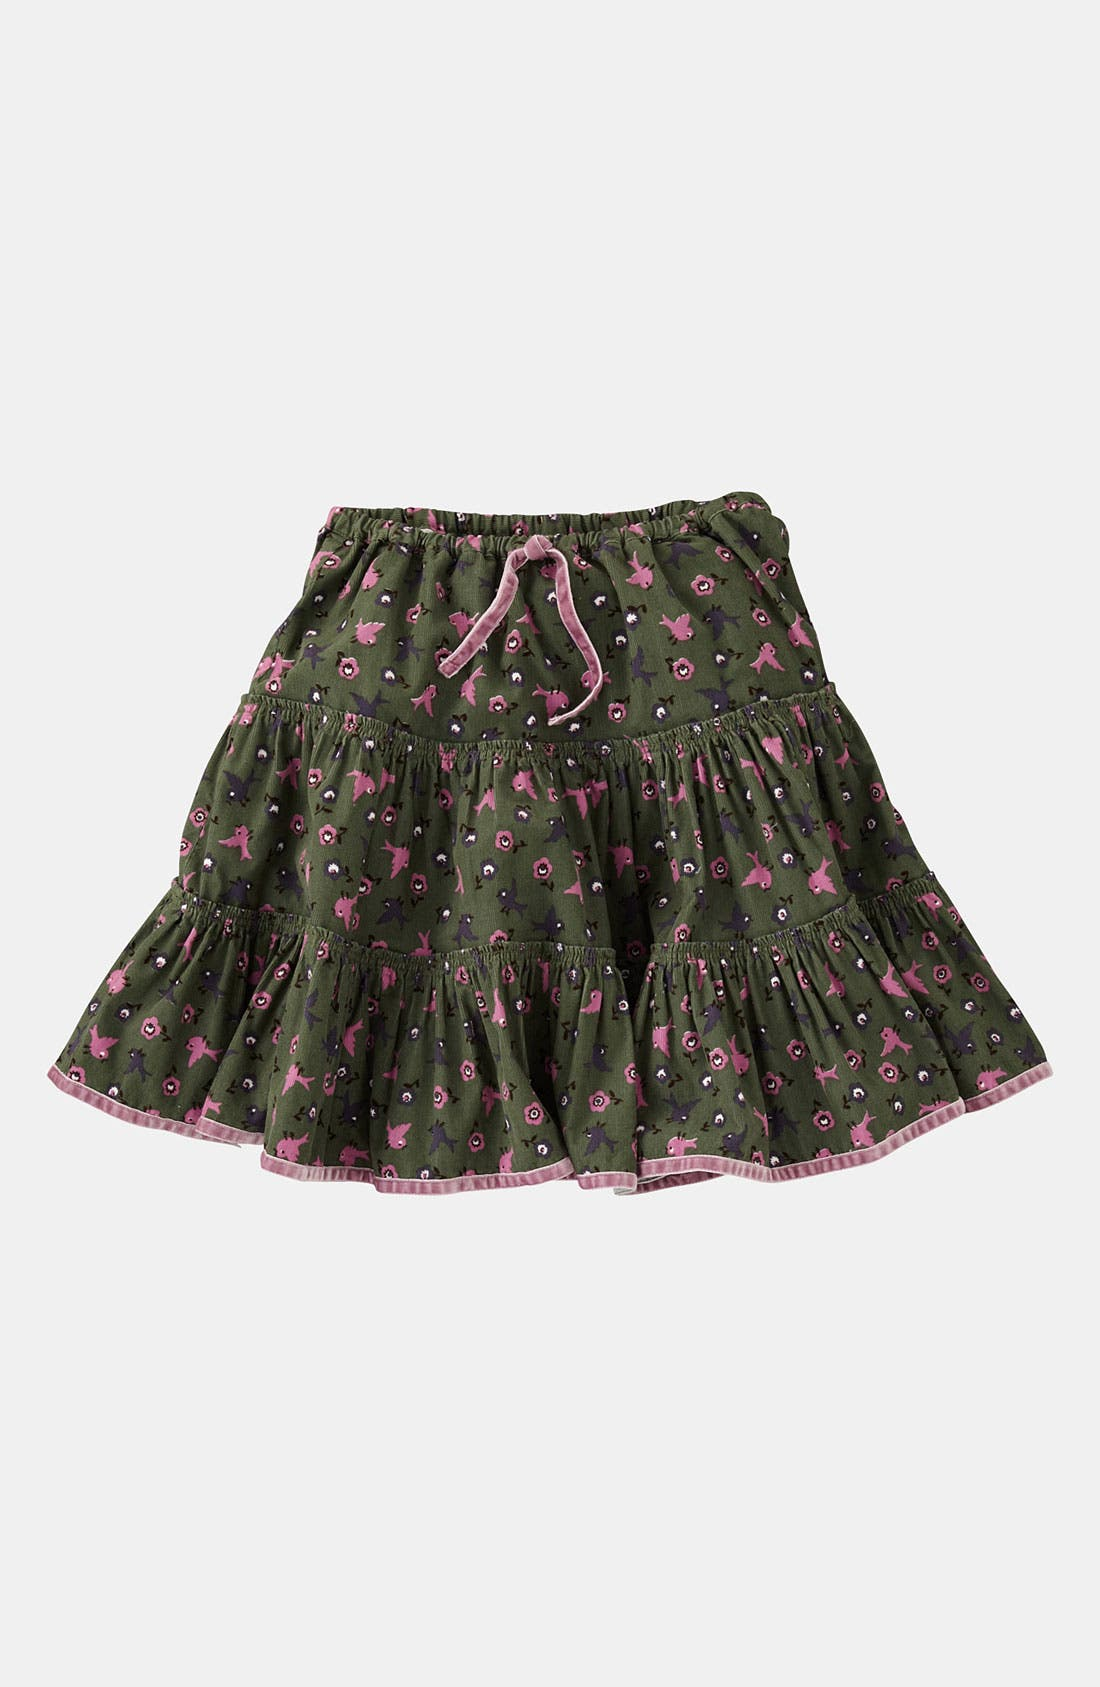 Main Image - Mini Boden 'Gypsy' Skirt (Toddler)